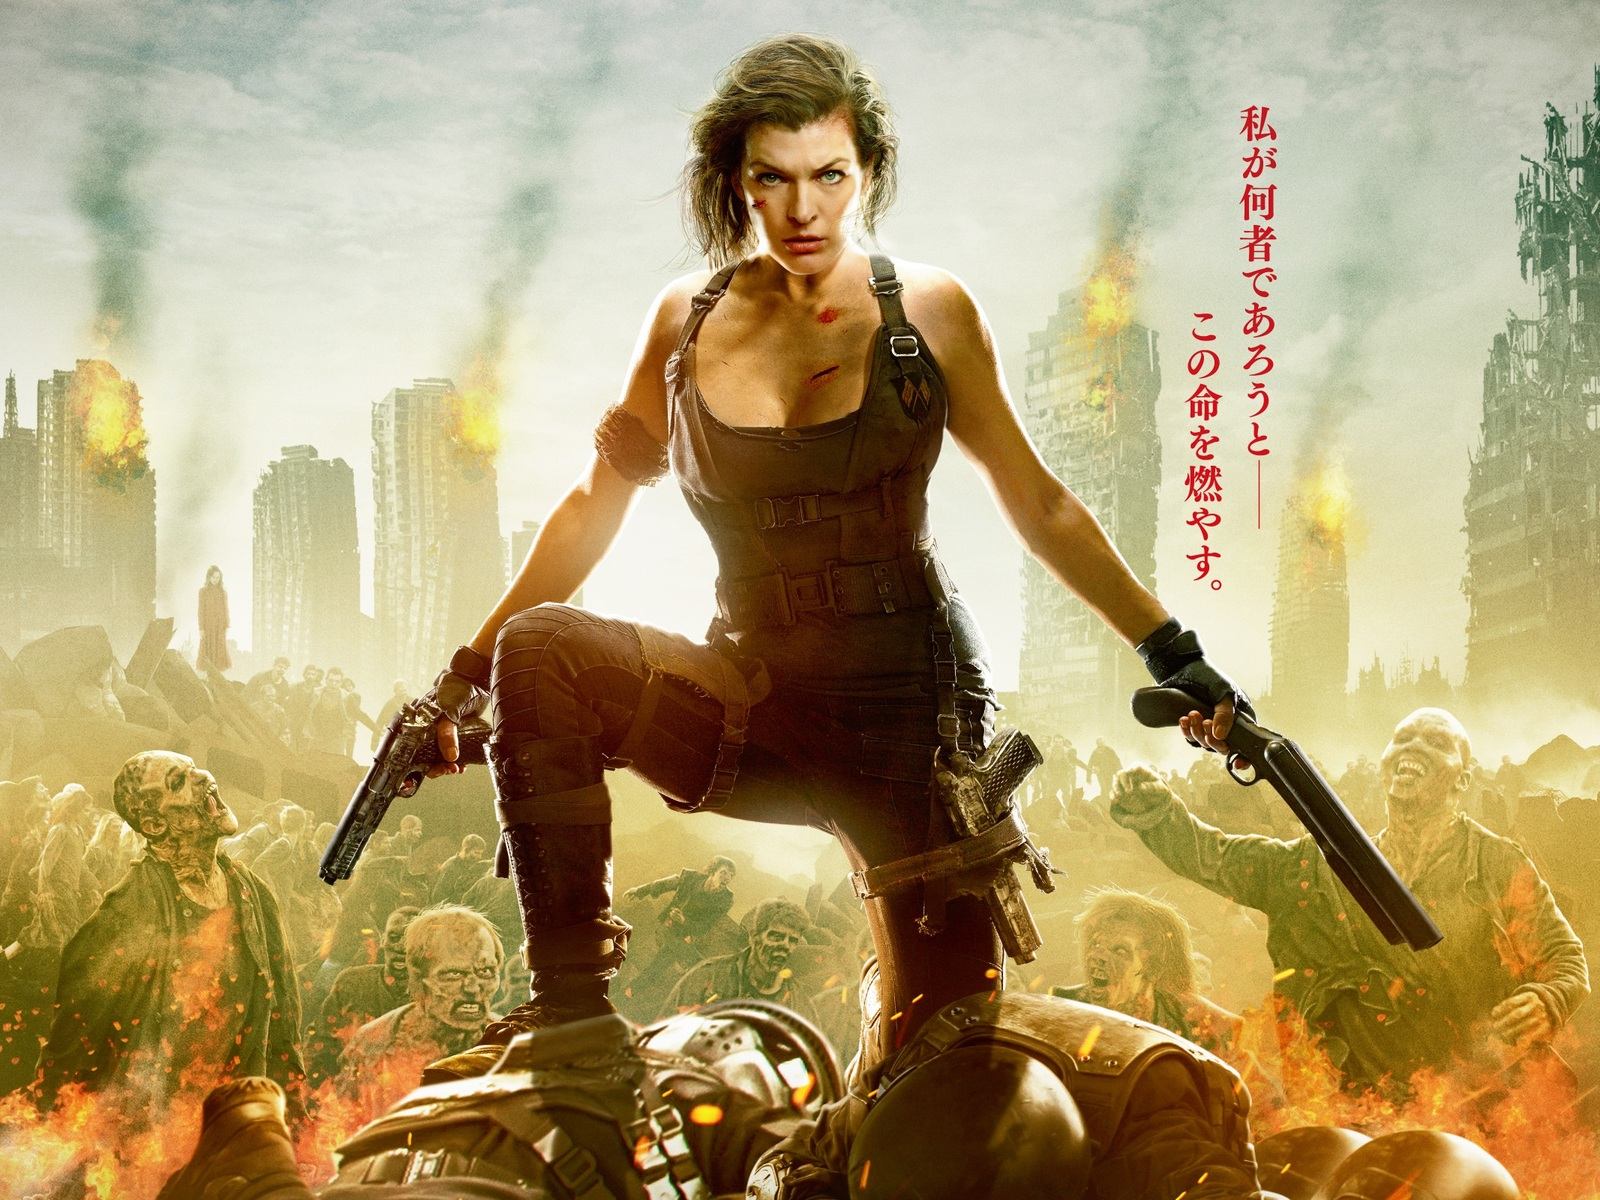 resident-evil-the-final-chapter-2016-movie-qu.jpg